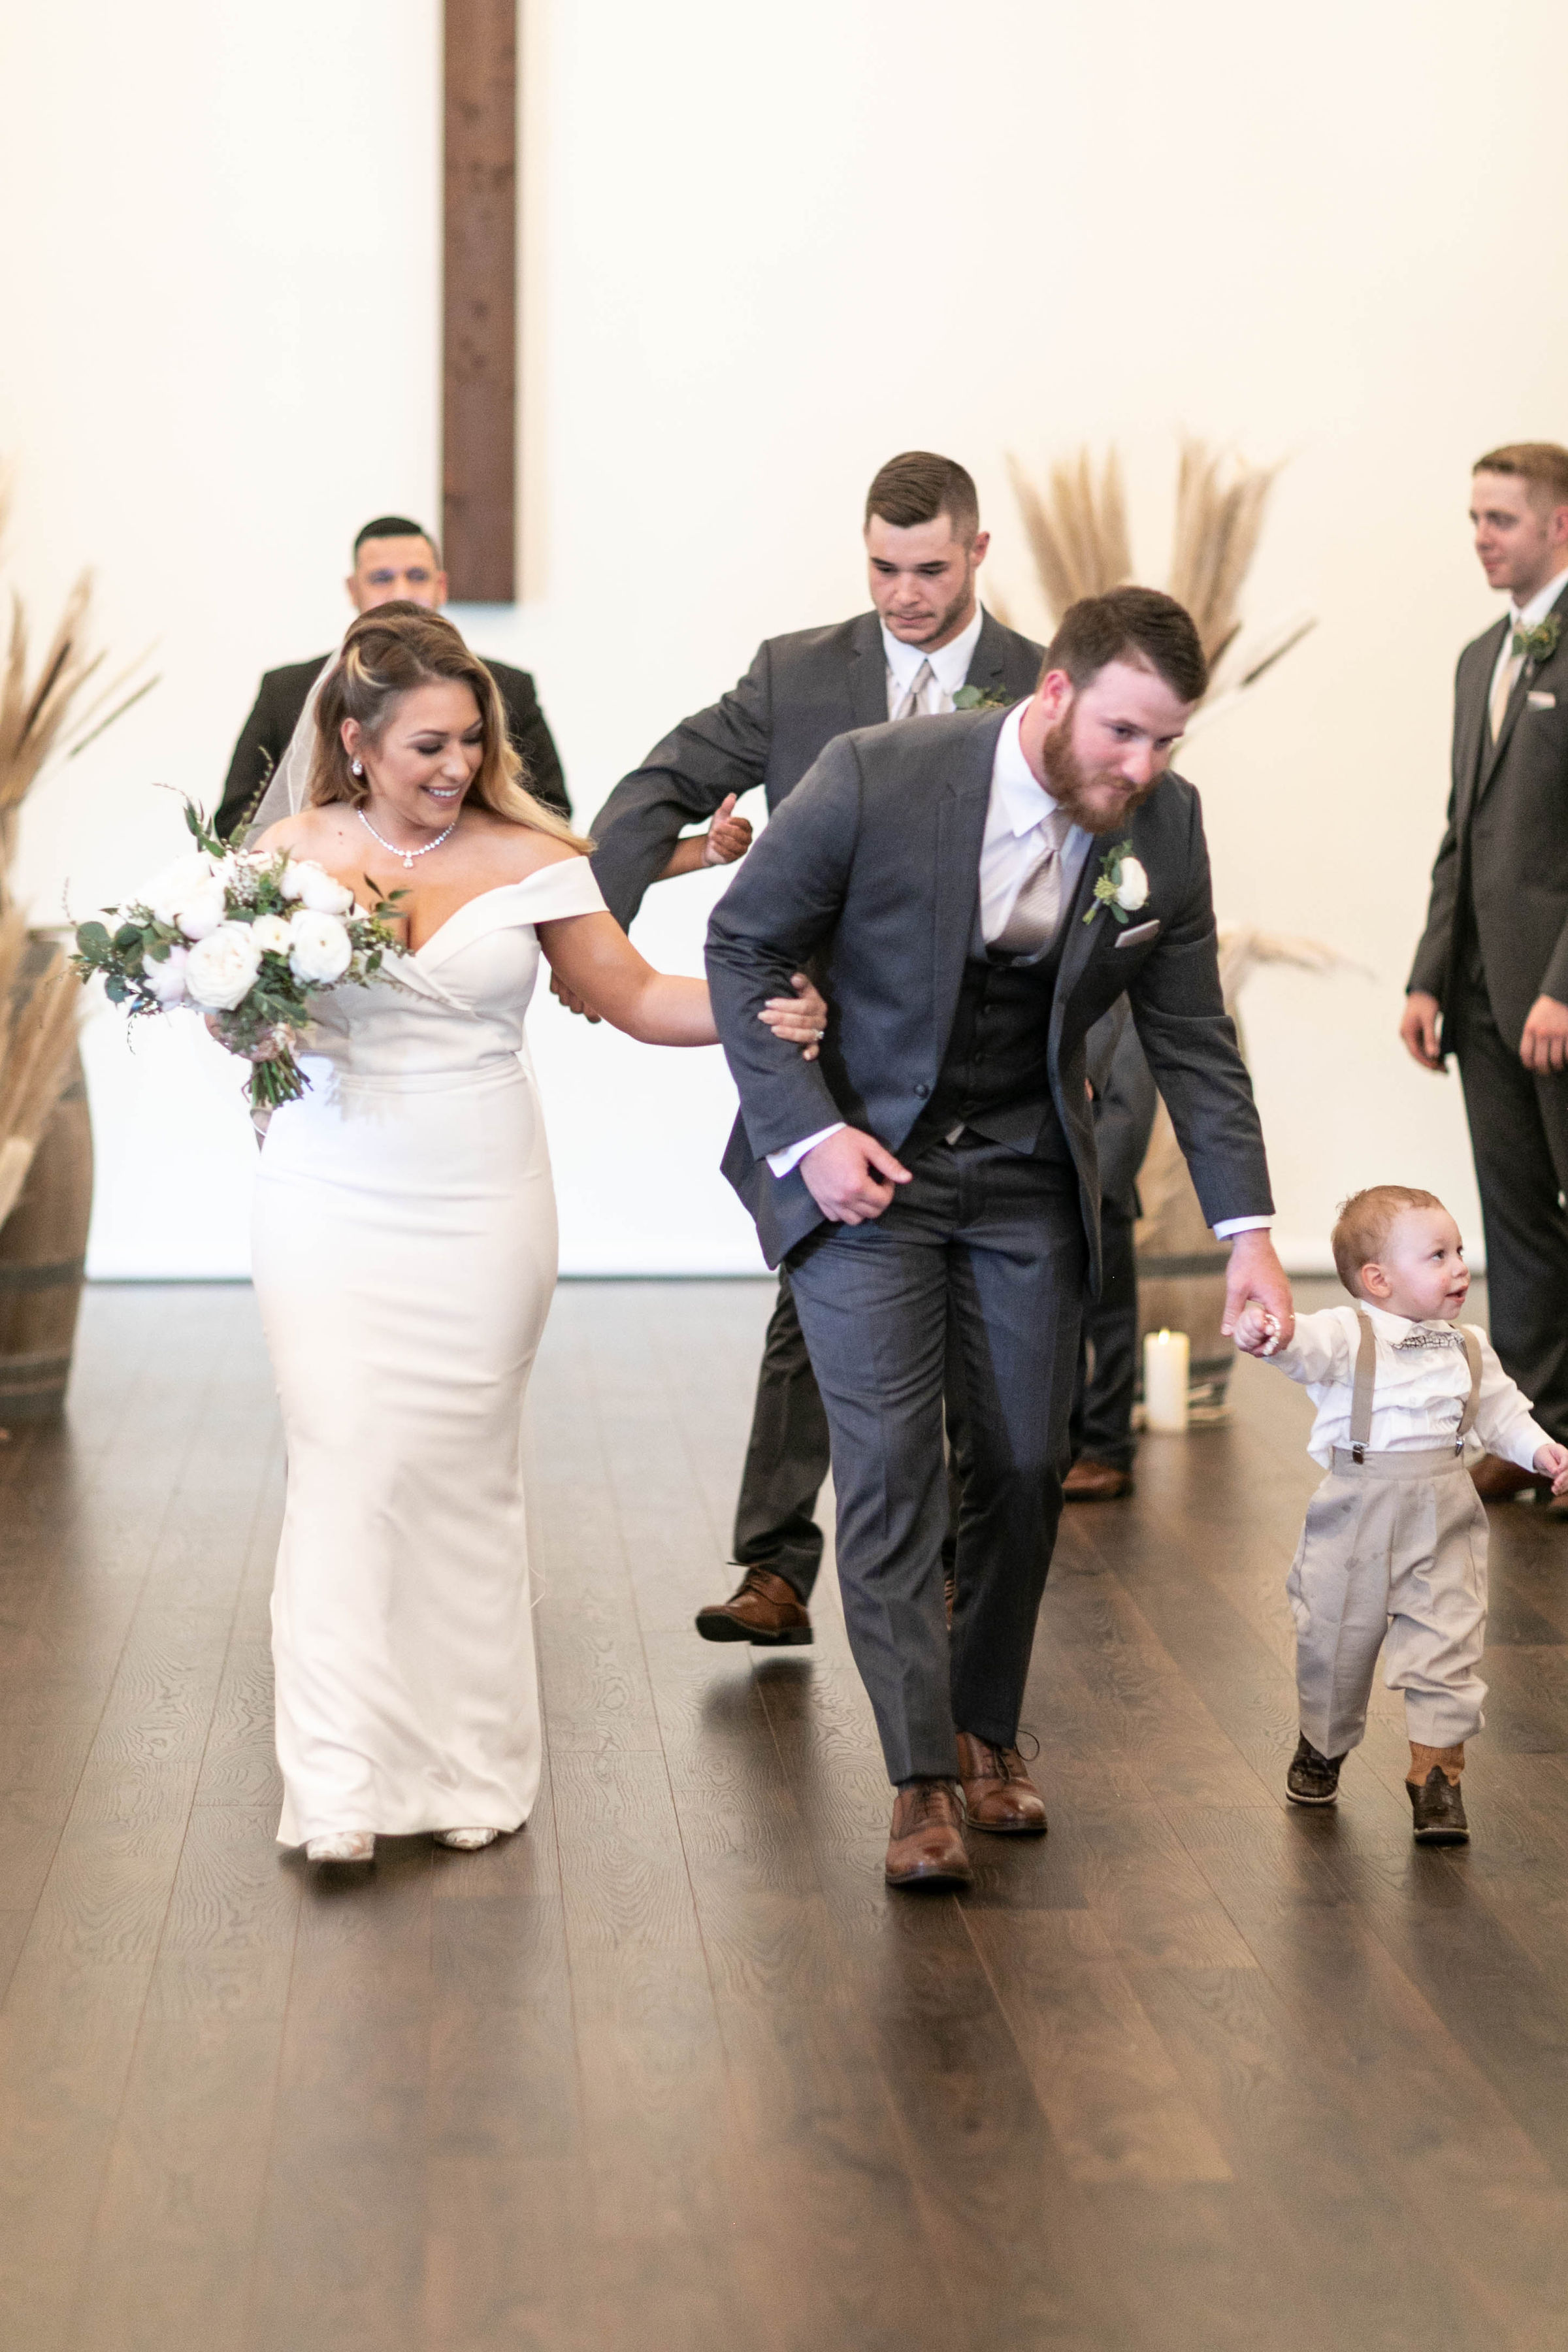 New Mr and Mrs with son | The Vine | Austin Wedding Planner